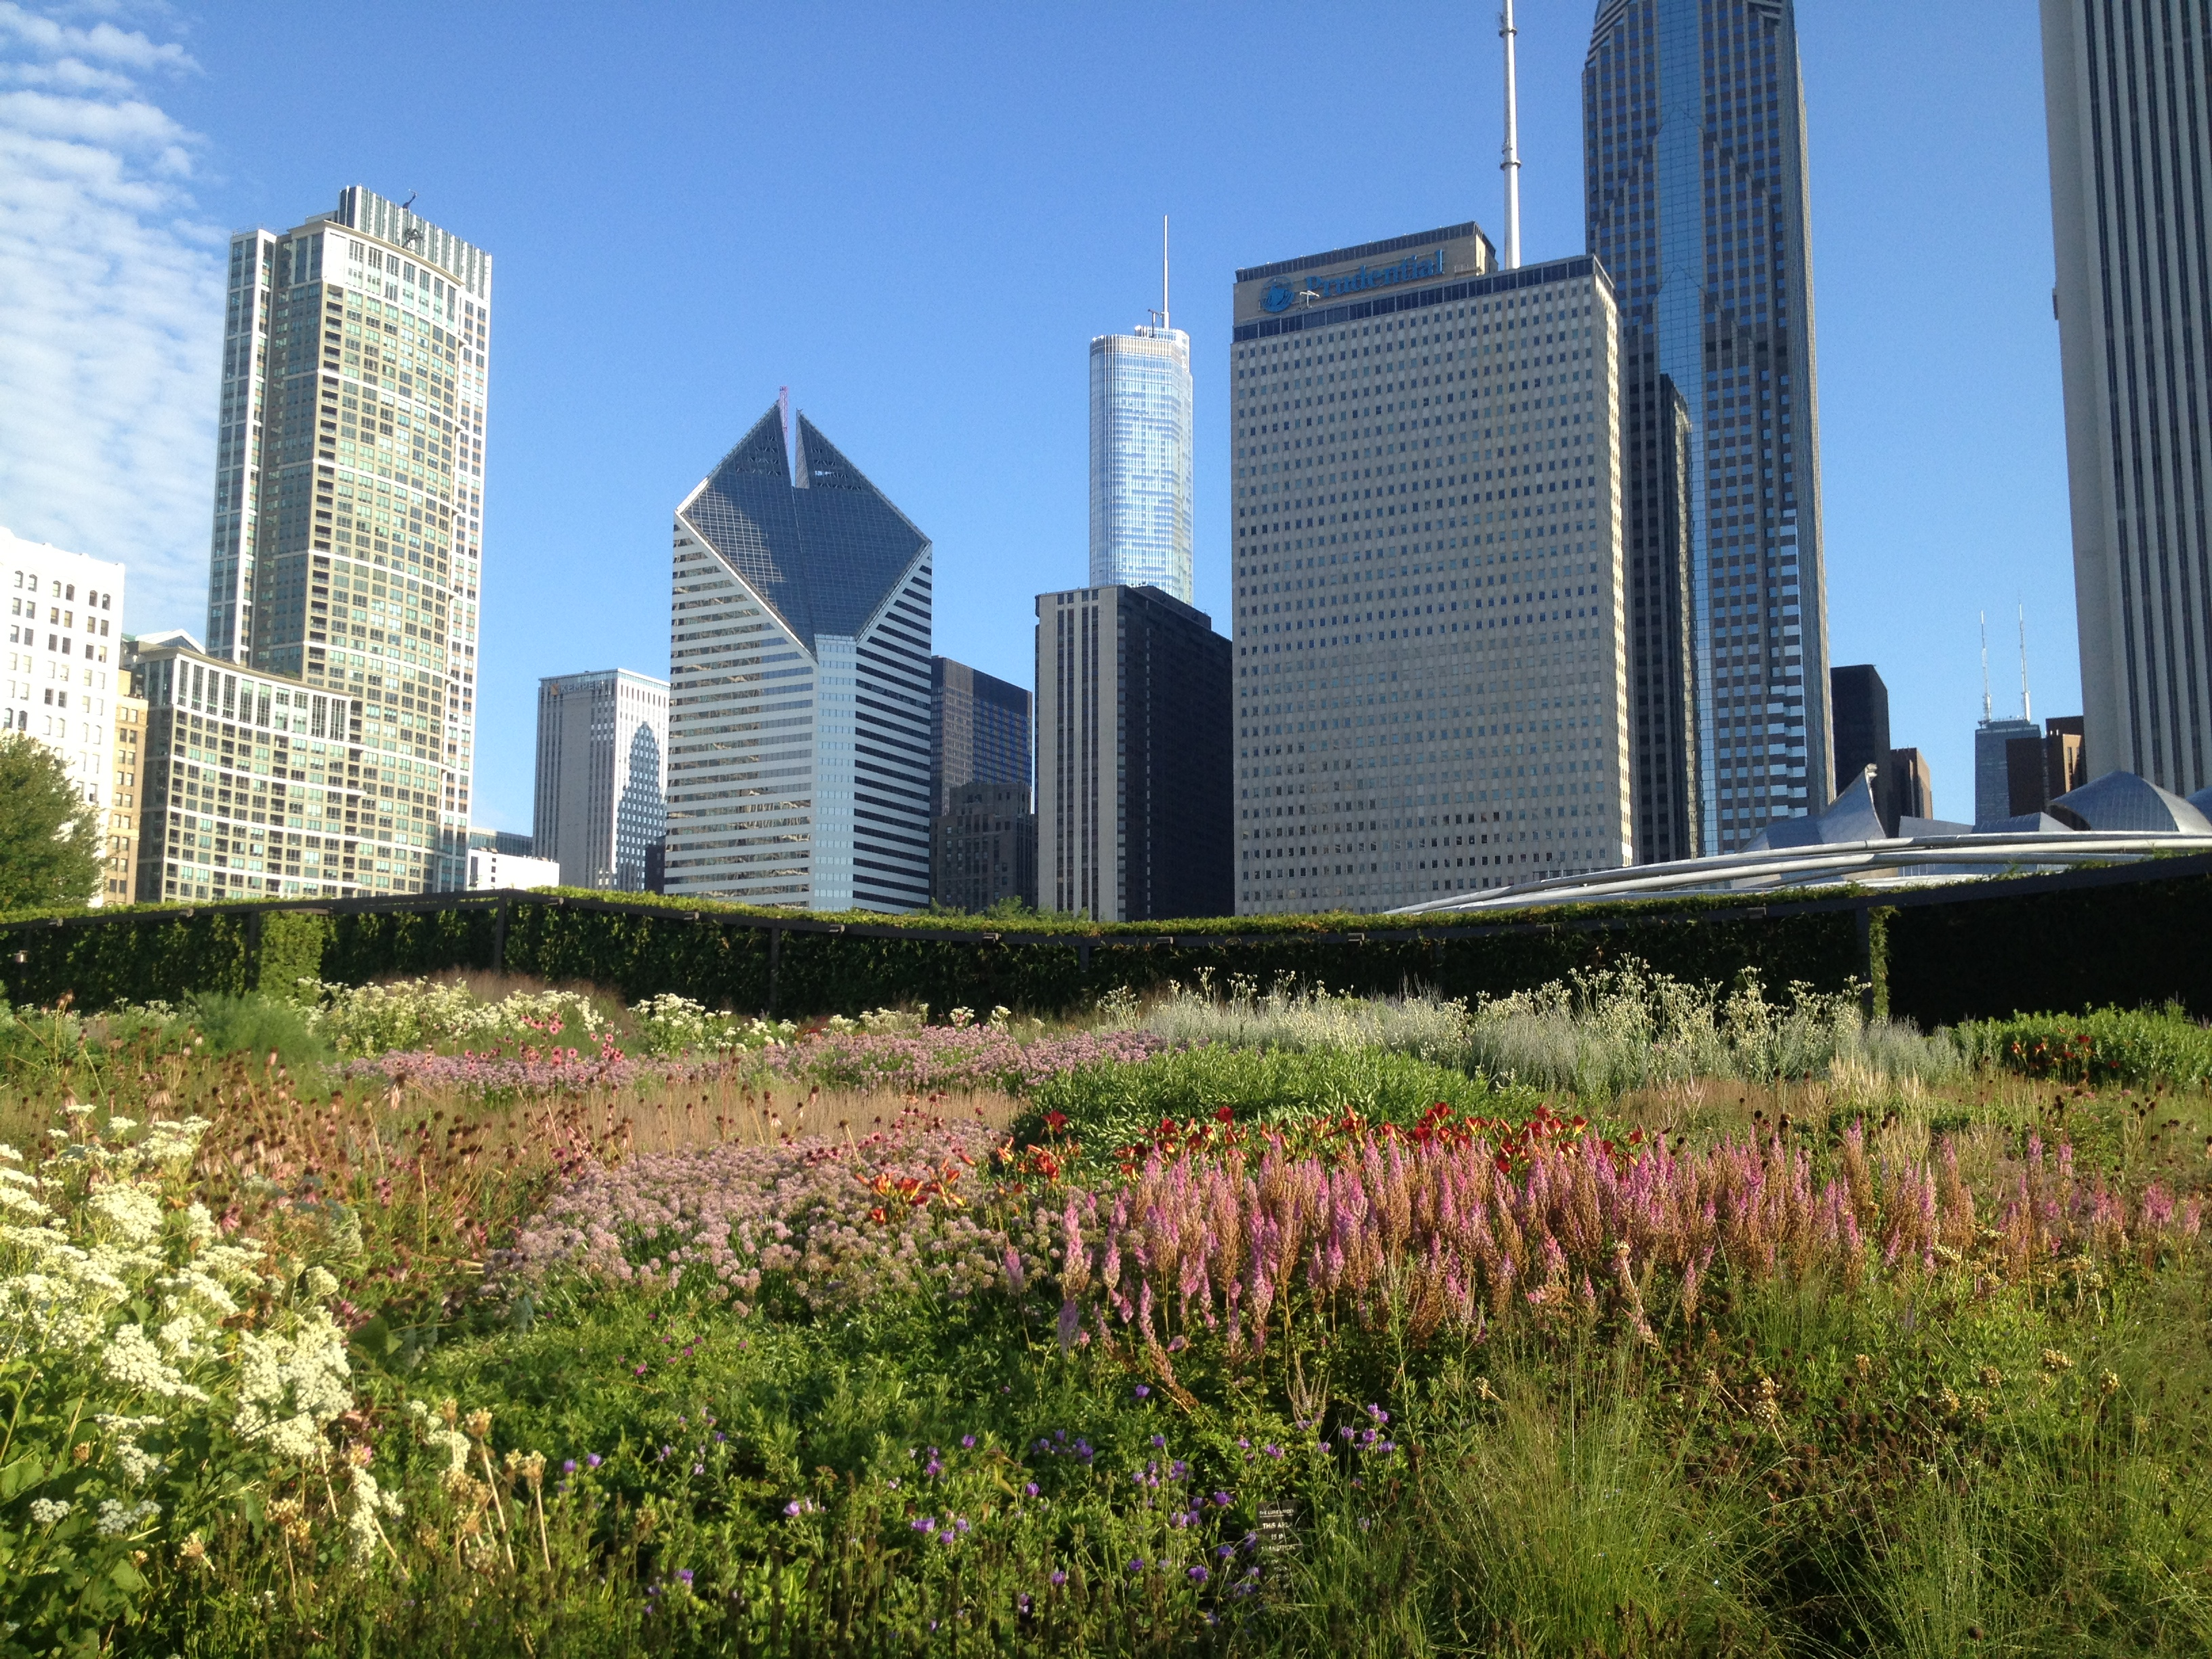 Introducing sustainable landscaping into urban areas results in healthier communities.